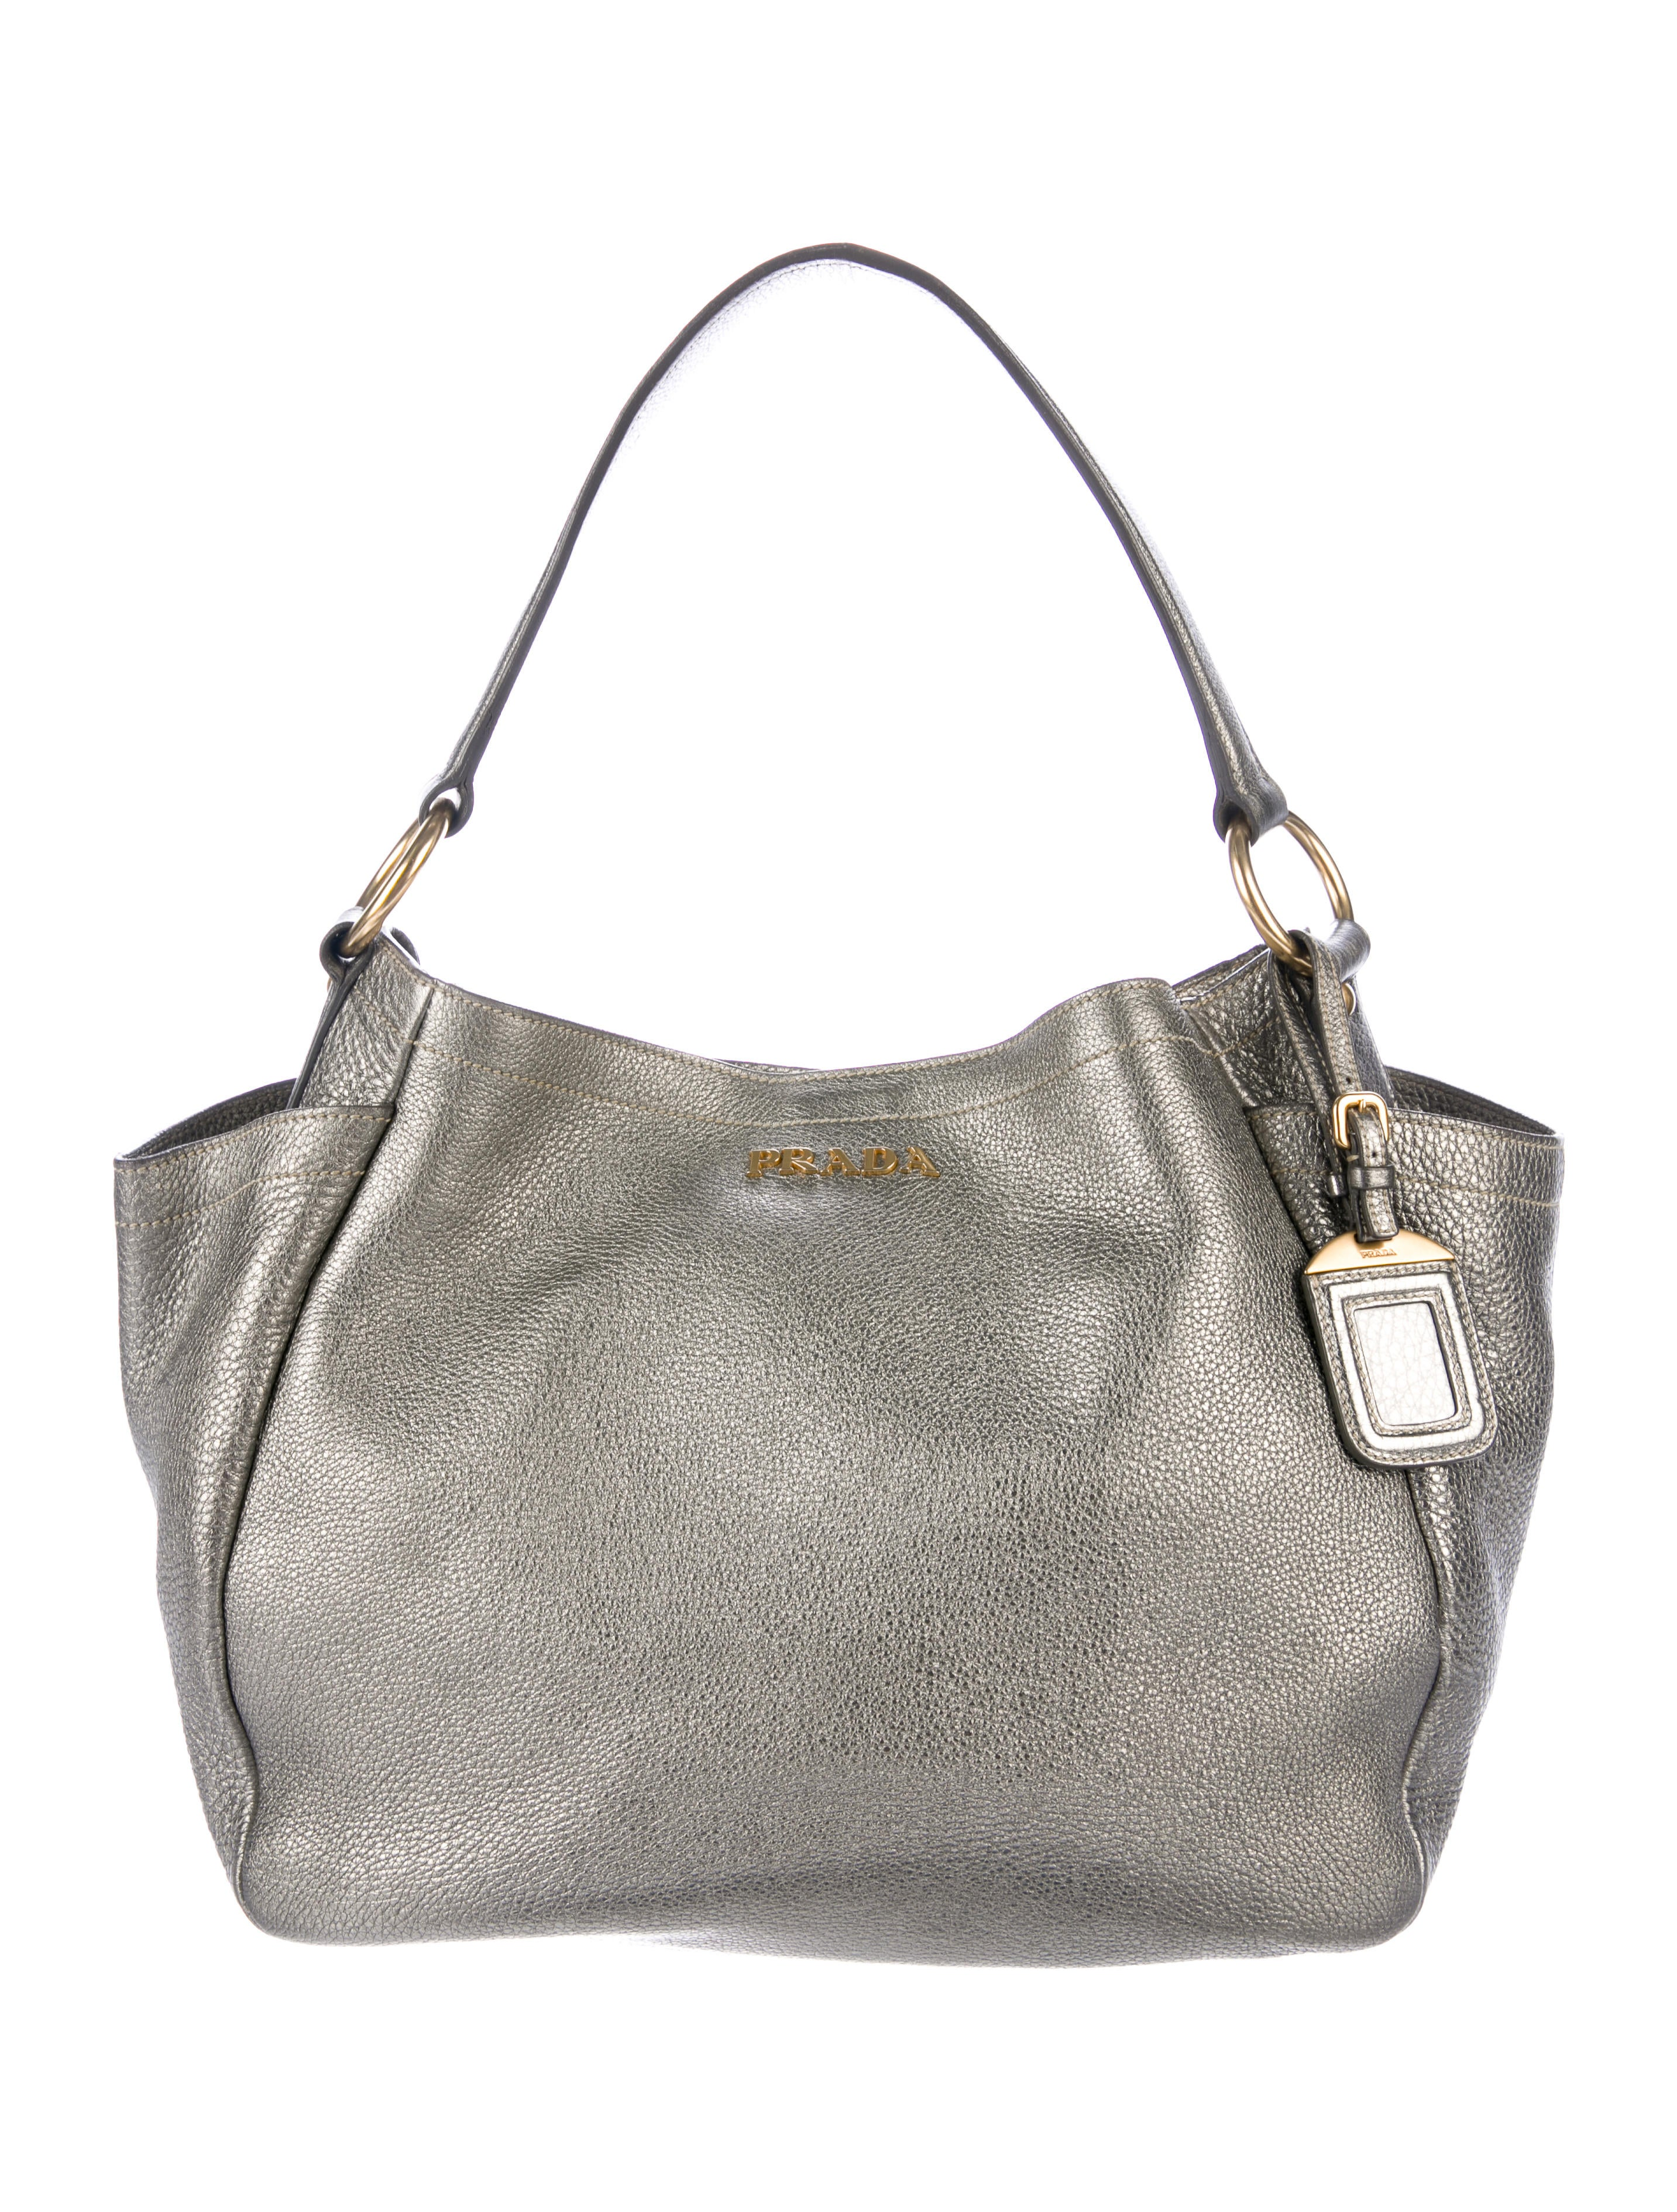 7e4cdb60d95f pre owned at therealreal prada vitello daino pocket tote detailing ...